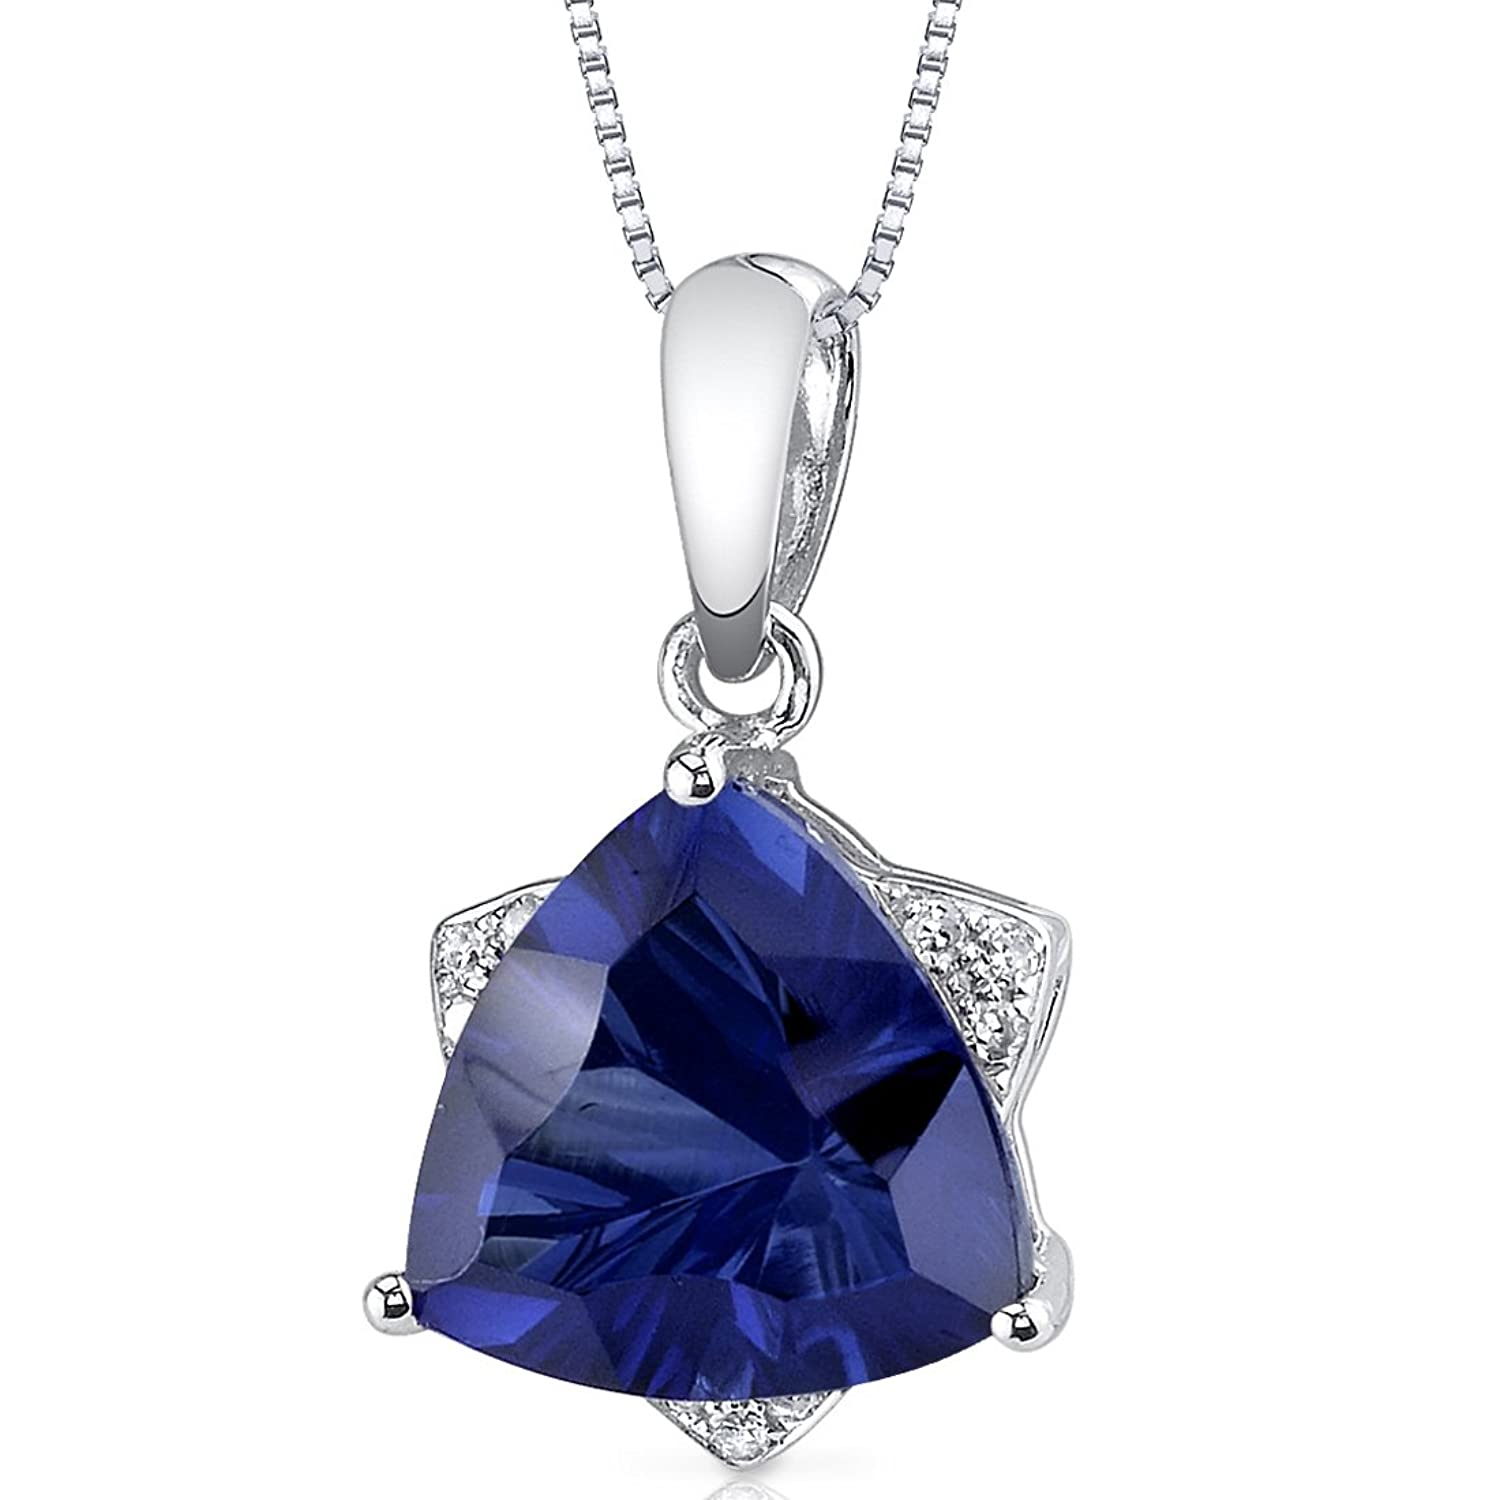 14 Karat White Gold Trillion Cut 3.73 carats Created Blue Sapphire Diamond Pendant